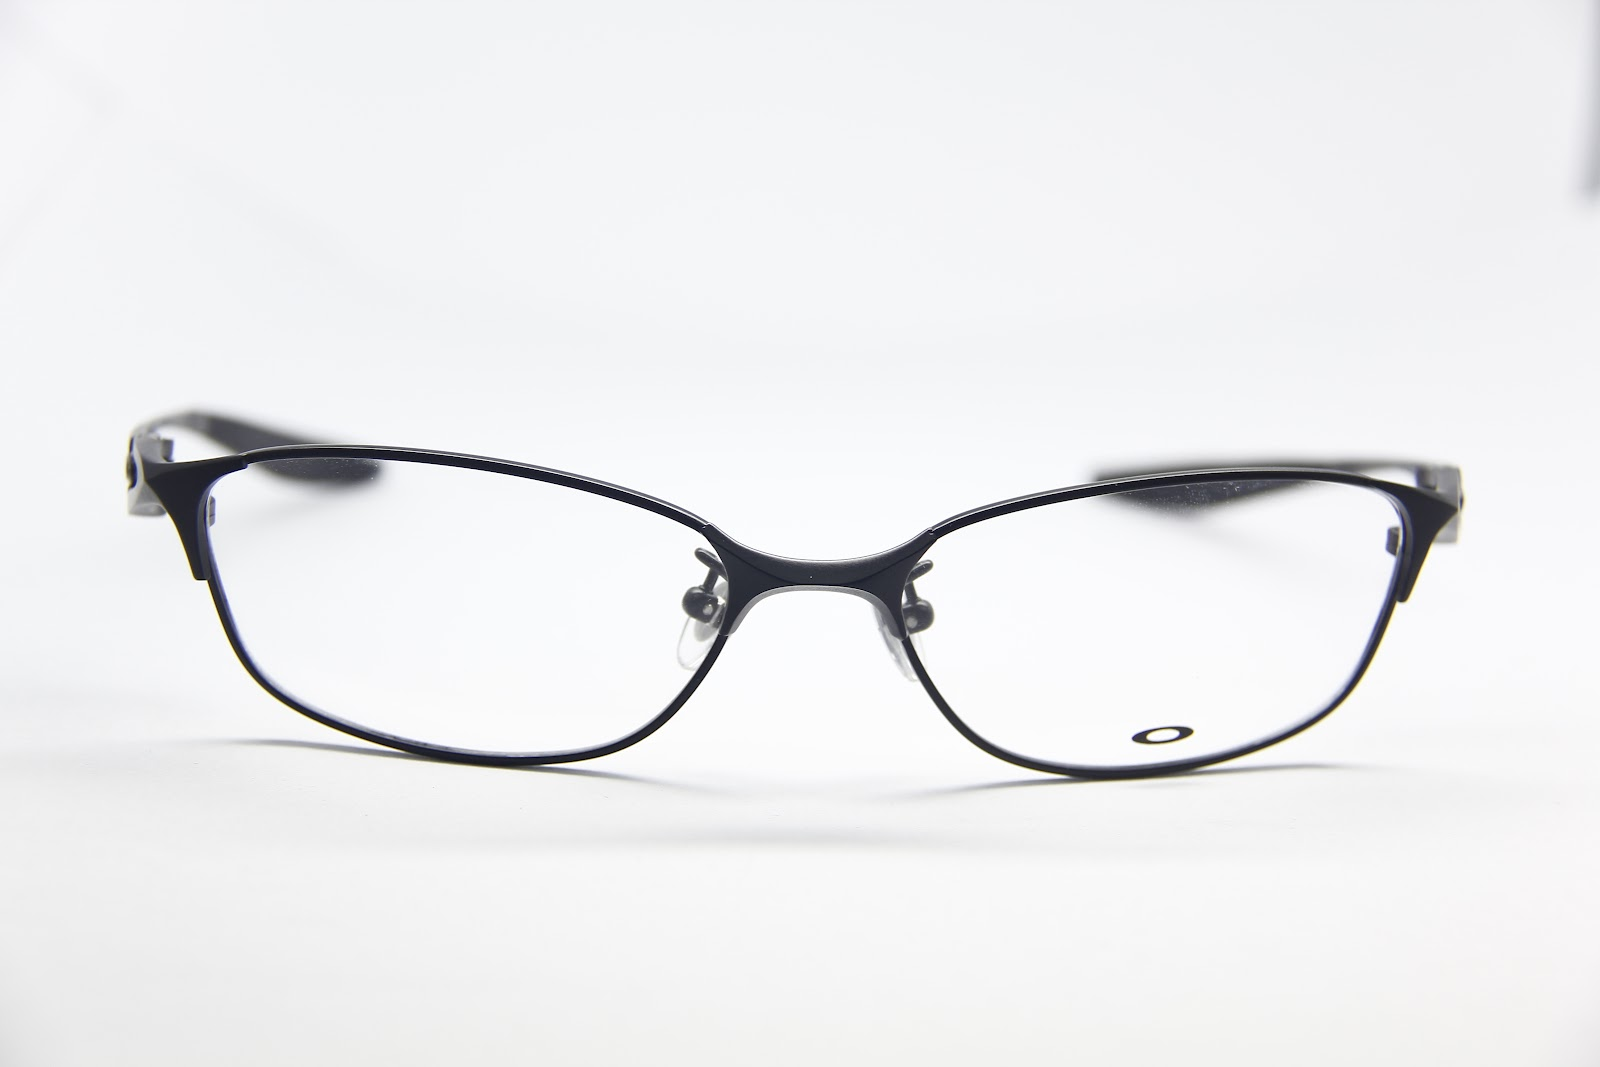 Oakley Singapore Prescription Glasses: Oakley Bracket 6.1 ...